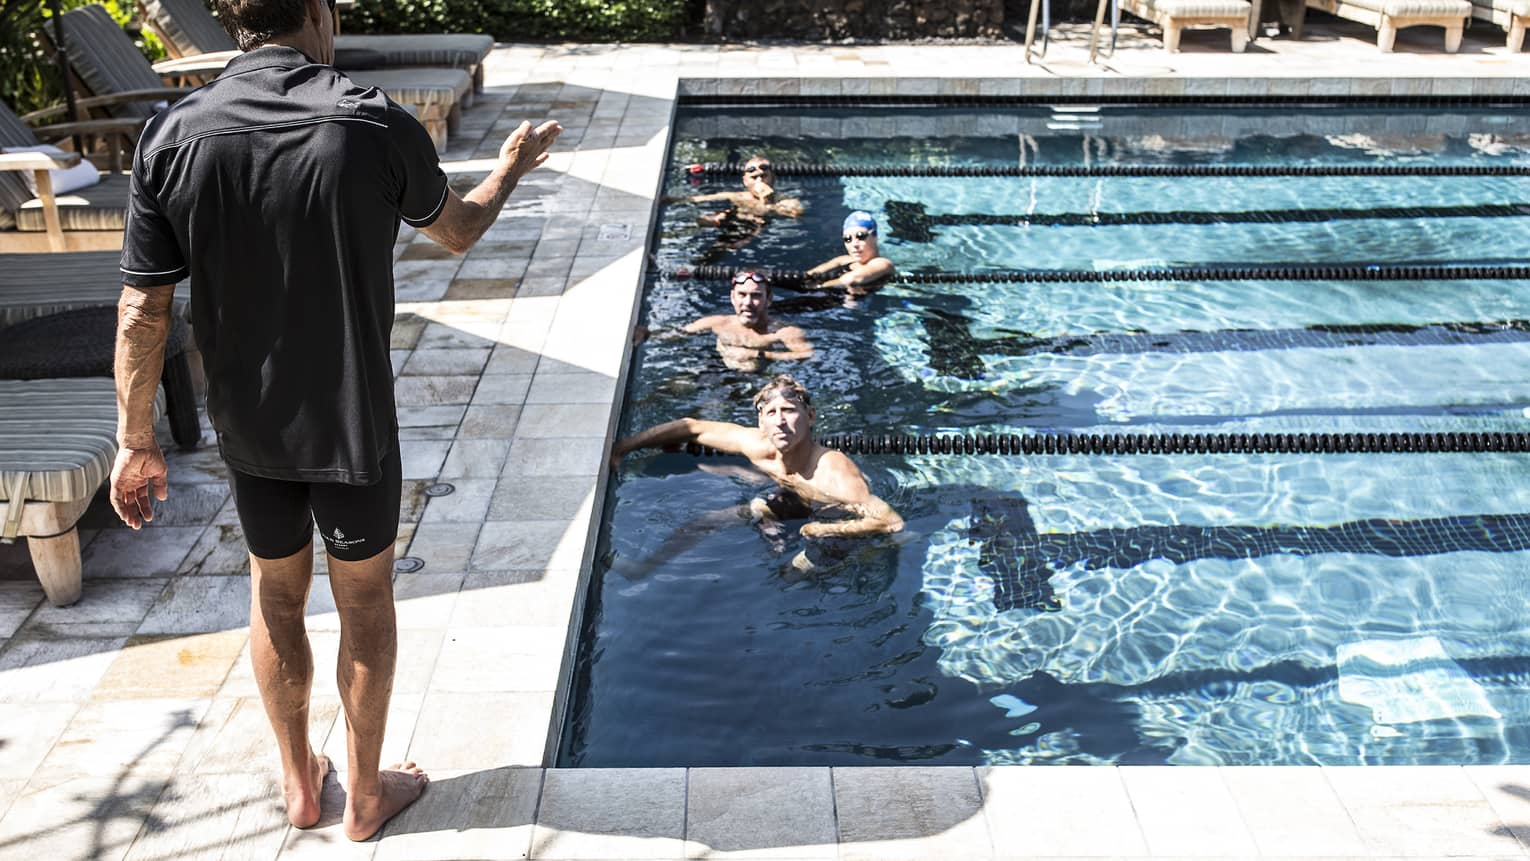 Guests in a pool, training for a triathlon with Dave Scott